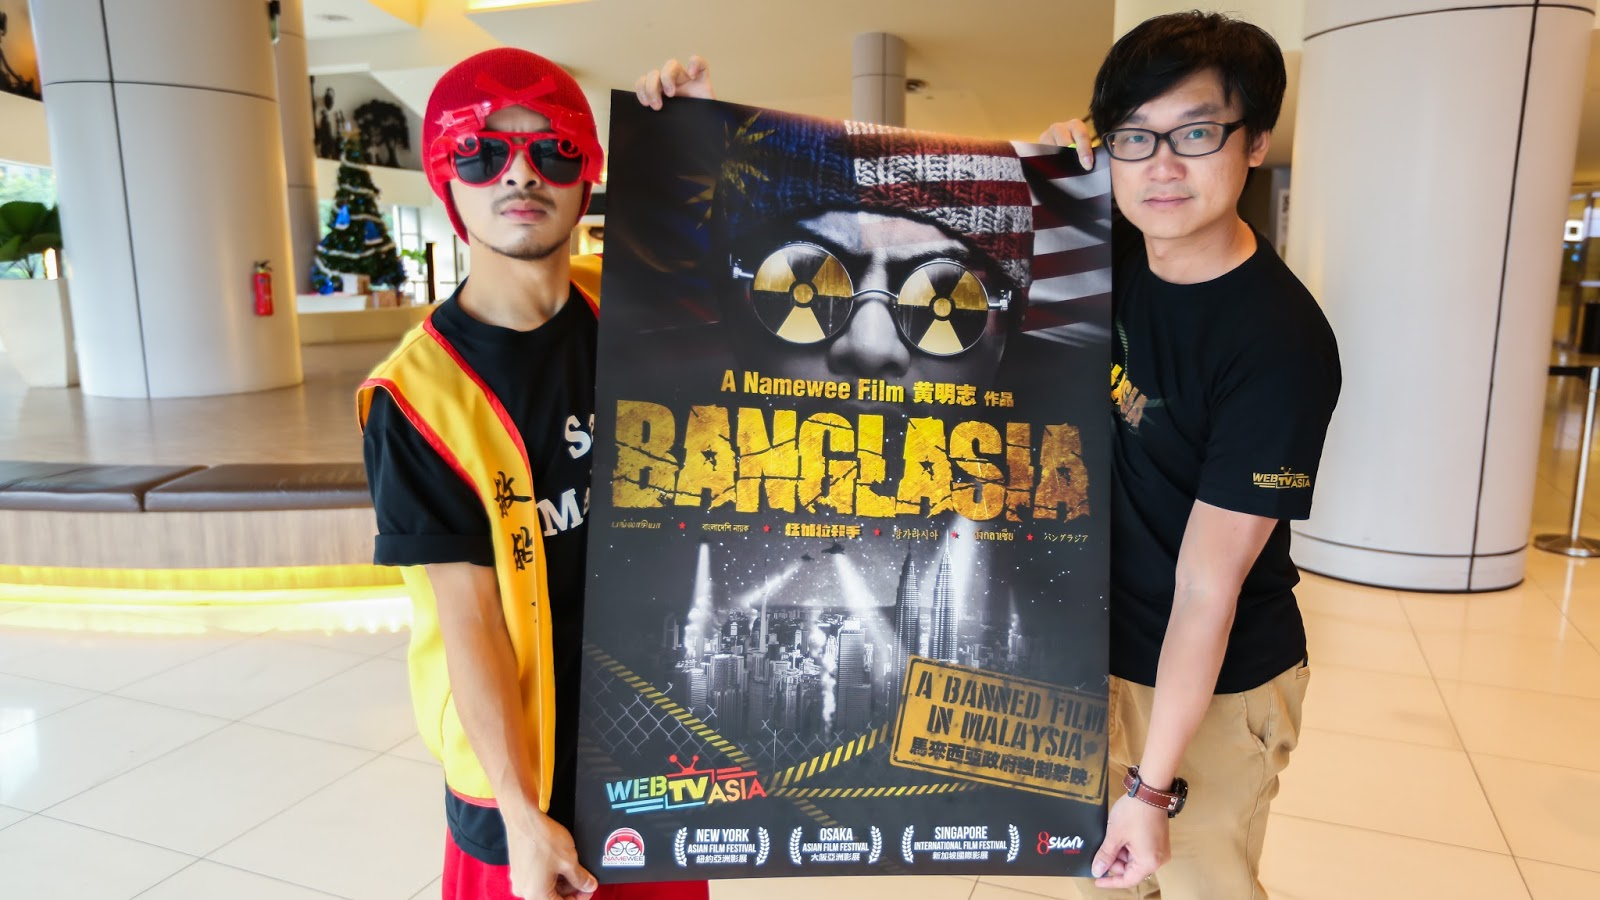 """Namewee starts crowd-funding campaign for """"Banglasia"""""""